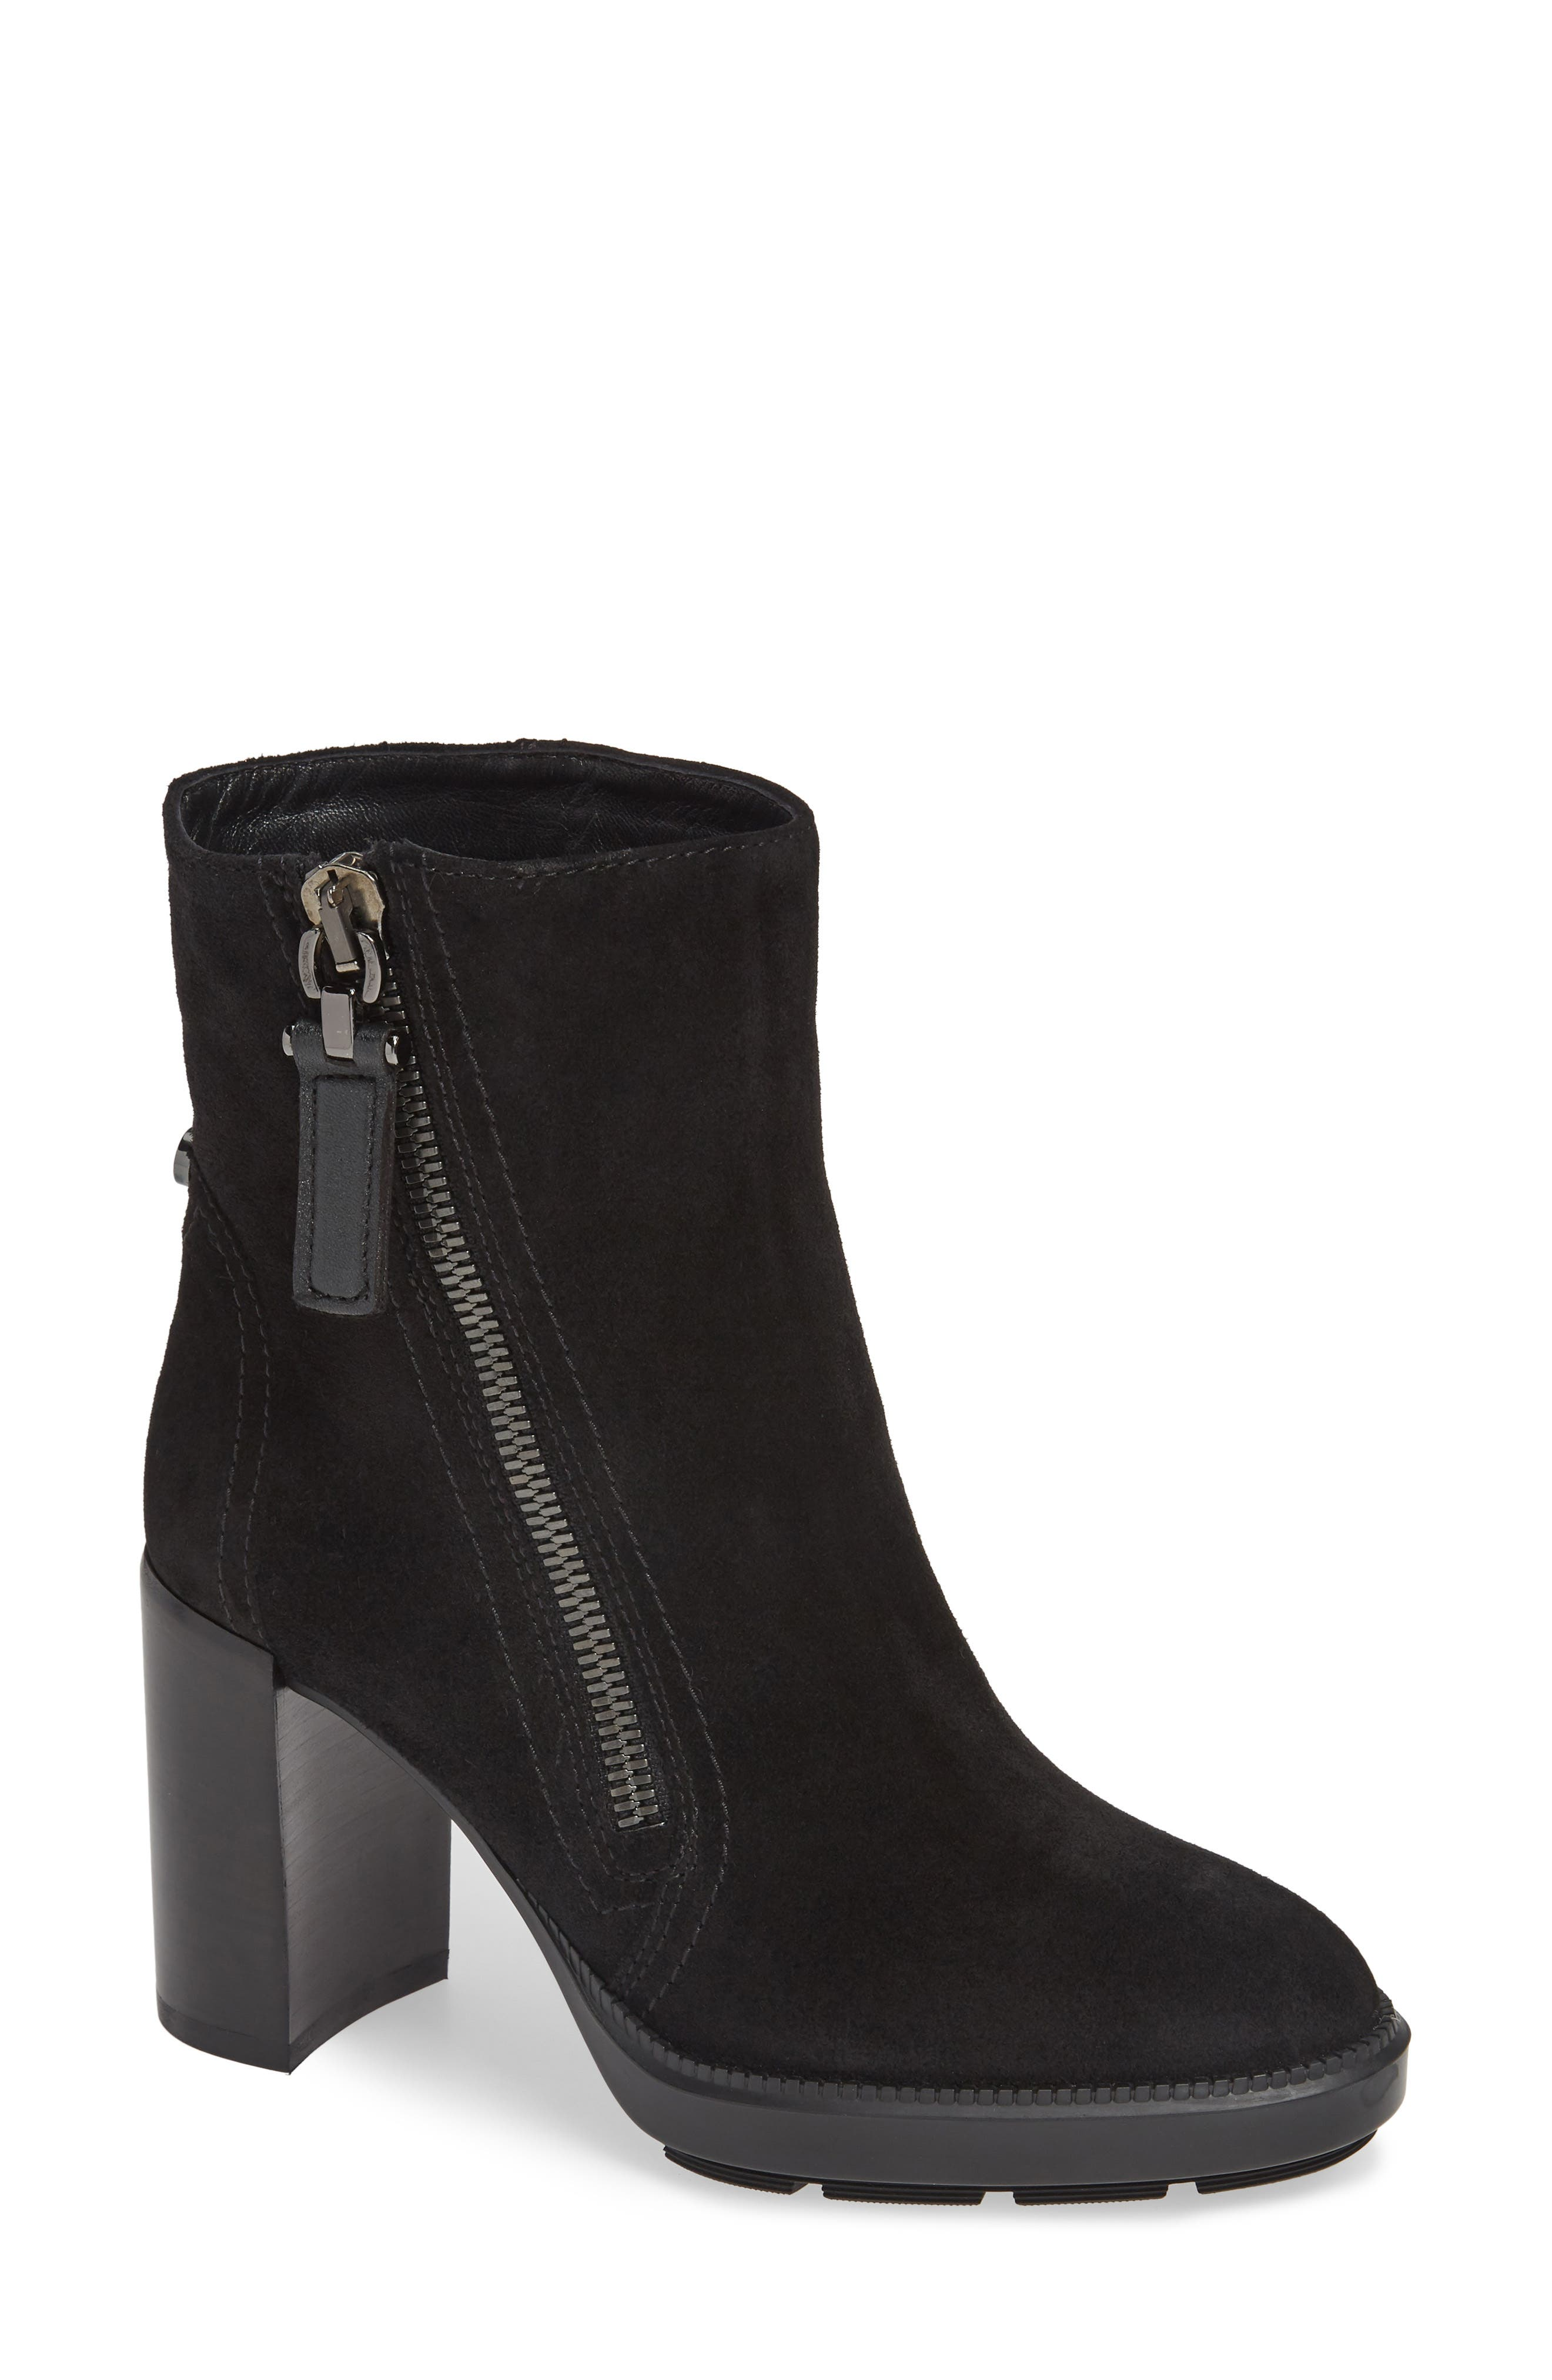 AQUATALIA Ilenia Weatherproof Suede Platform Booties in Black Metallic Suede